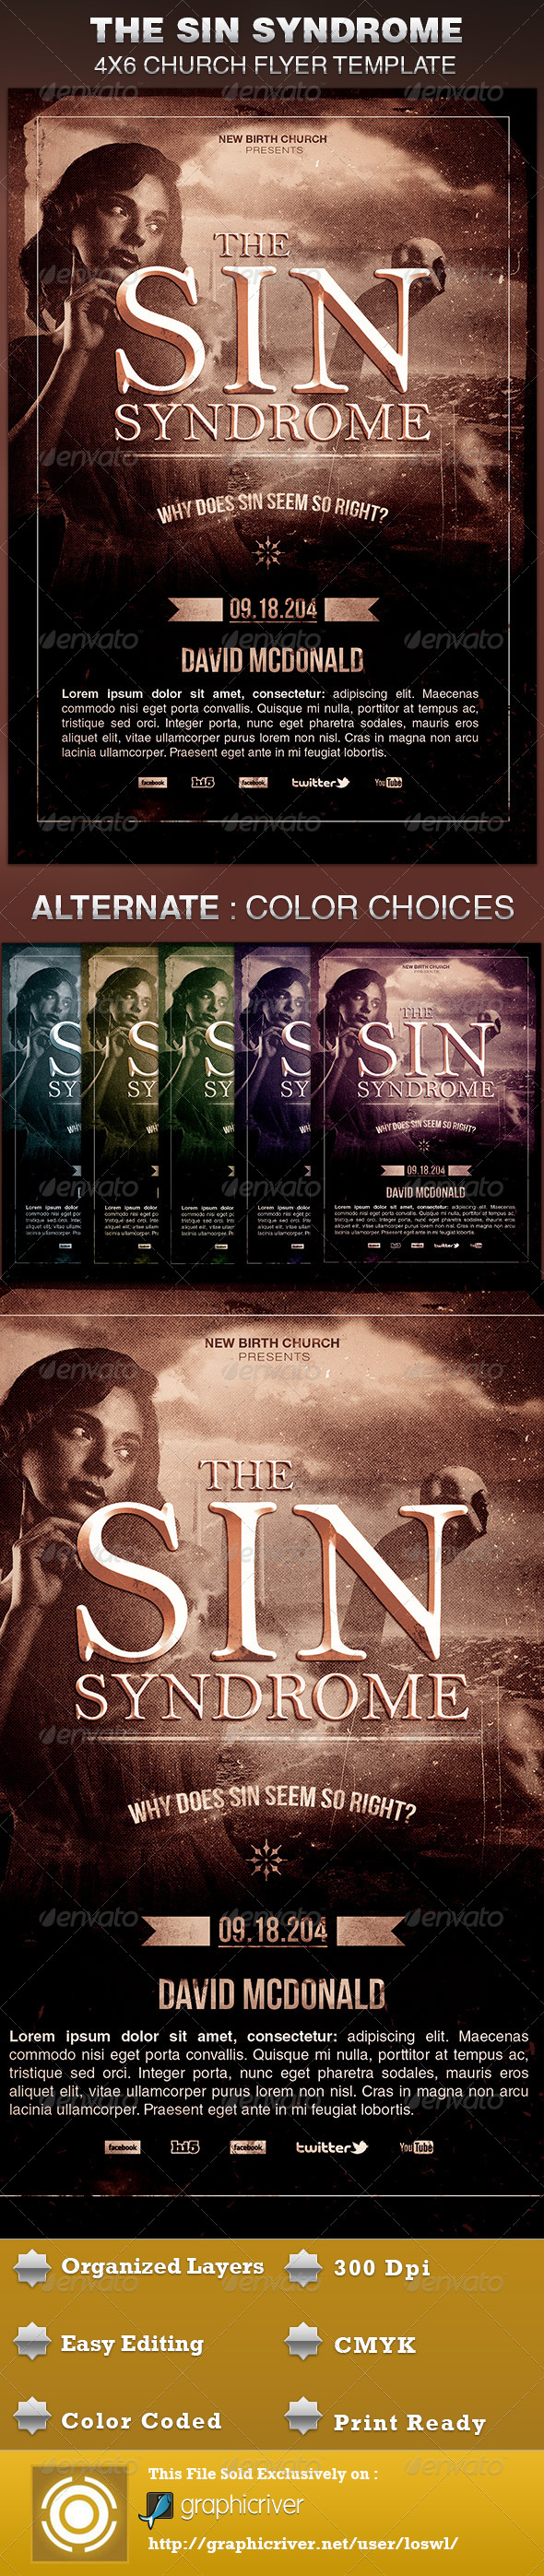 GraphicRiver The Sin Syndrome Church Flyer Template 5639865